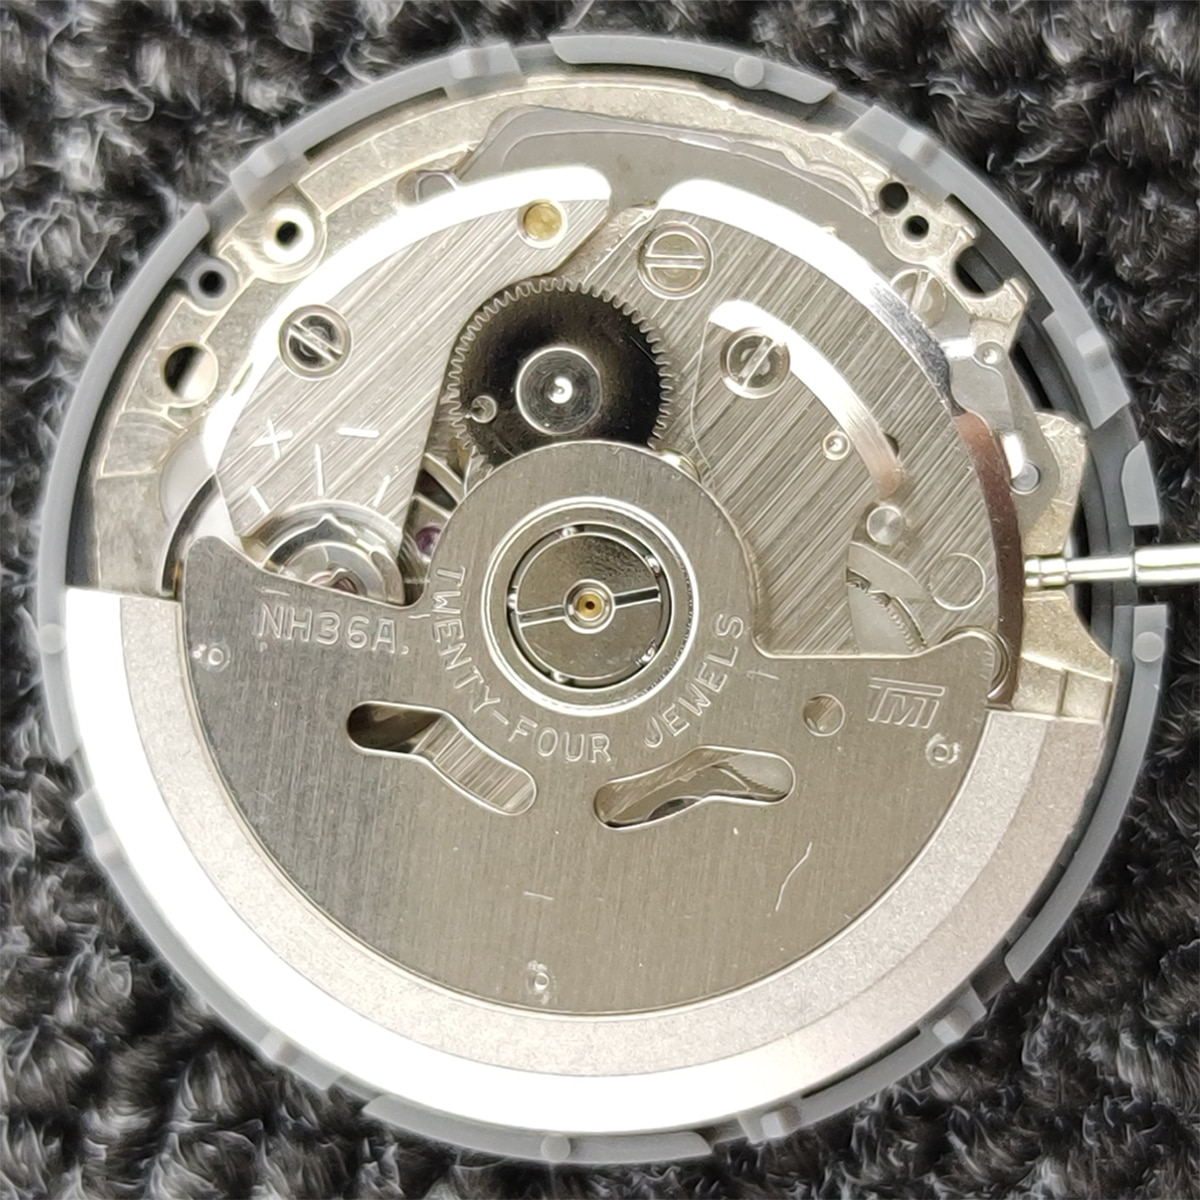 NH36 Movement Brand New Original  Automatic Dual Calendar 3Oclock Crown 3.8 O'clock Crown Watch Movement Replacement Parts enlarge